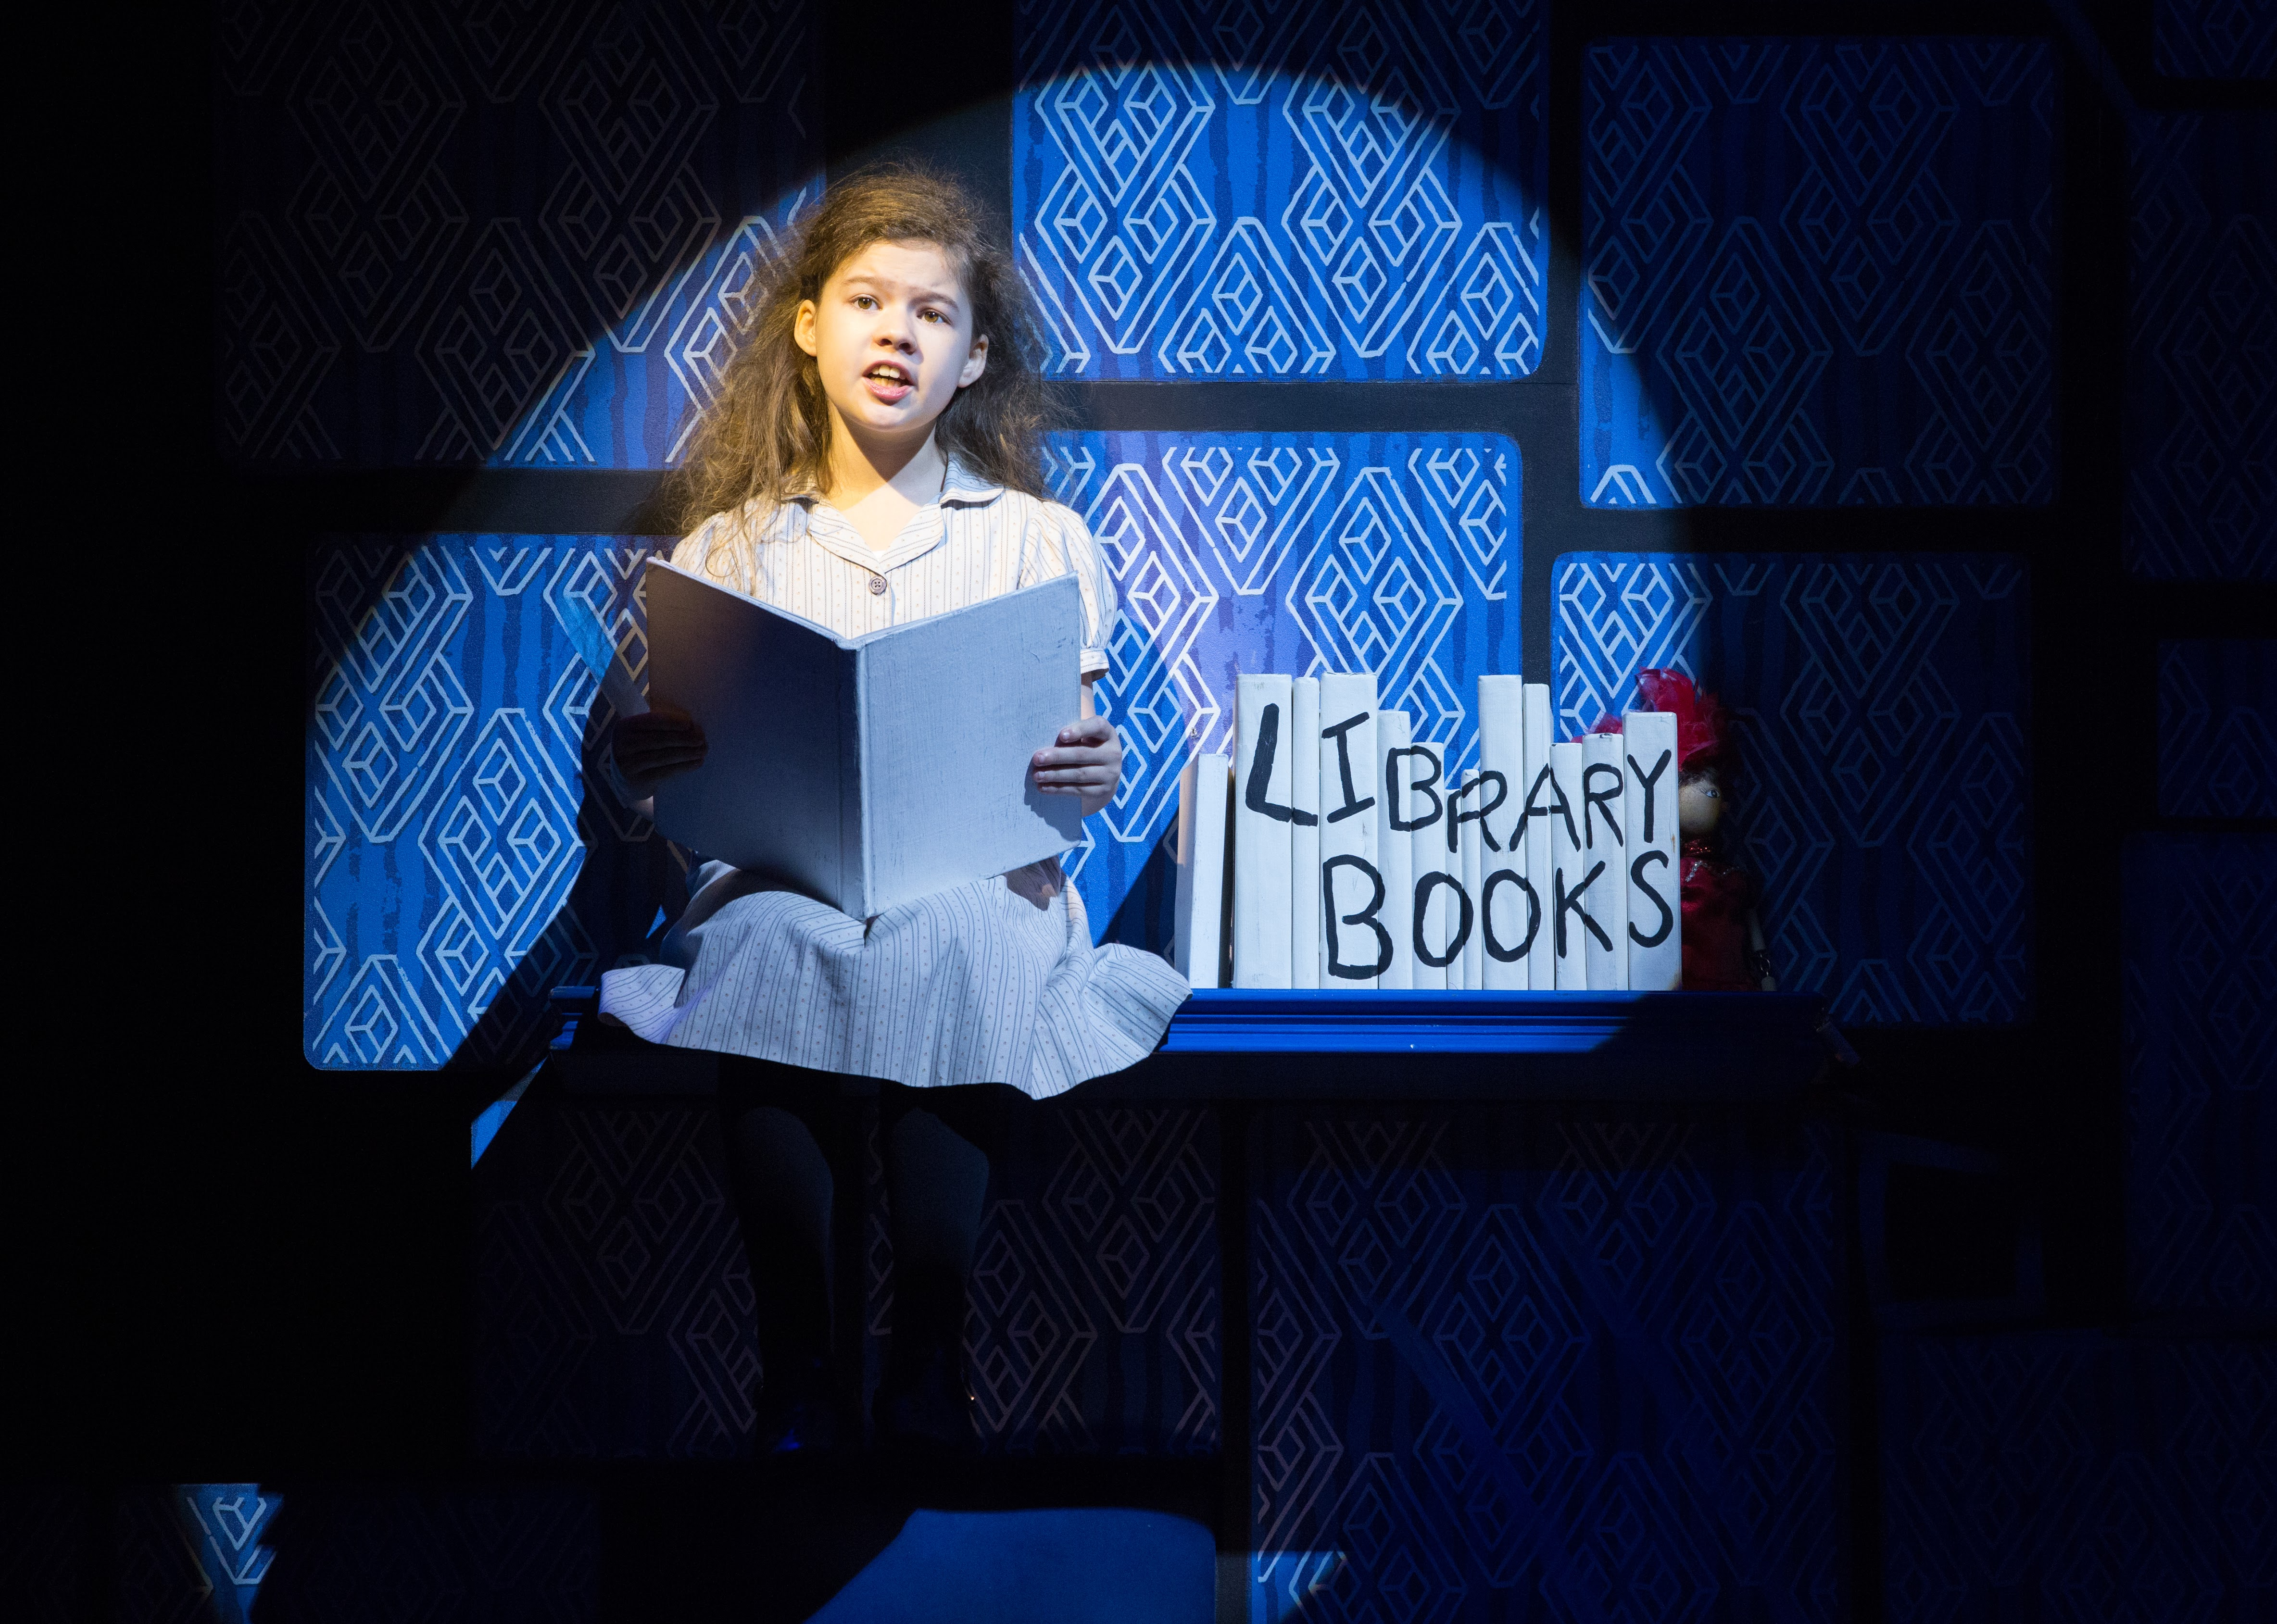 Jenna Weir as the title character in Matilda The Musical had just the right amount of spunk.